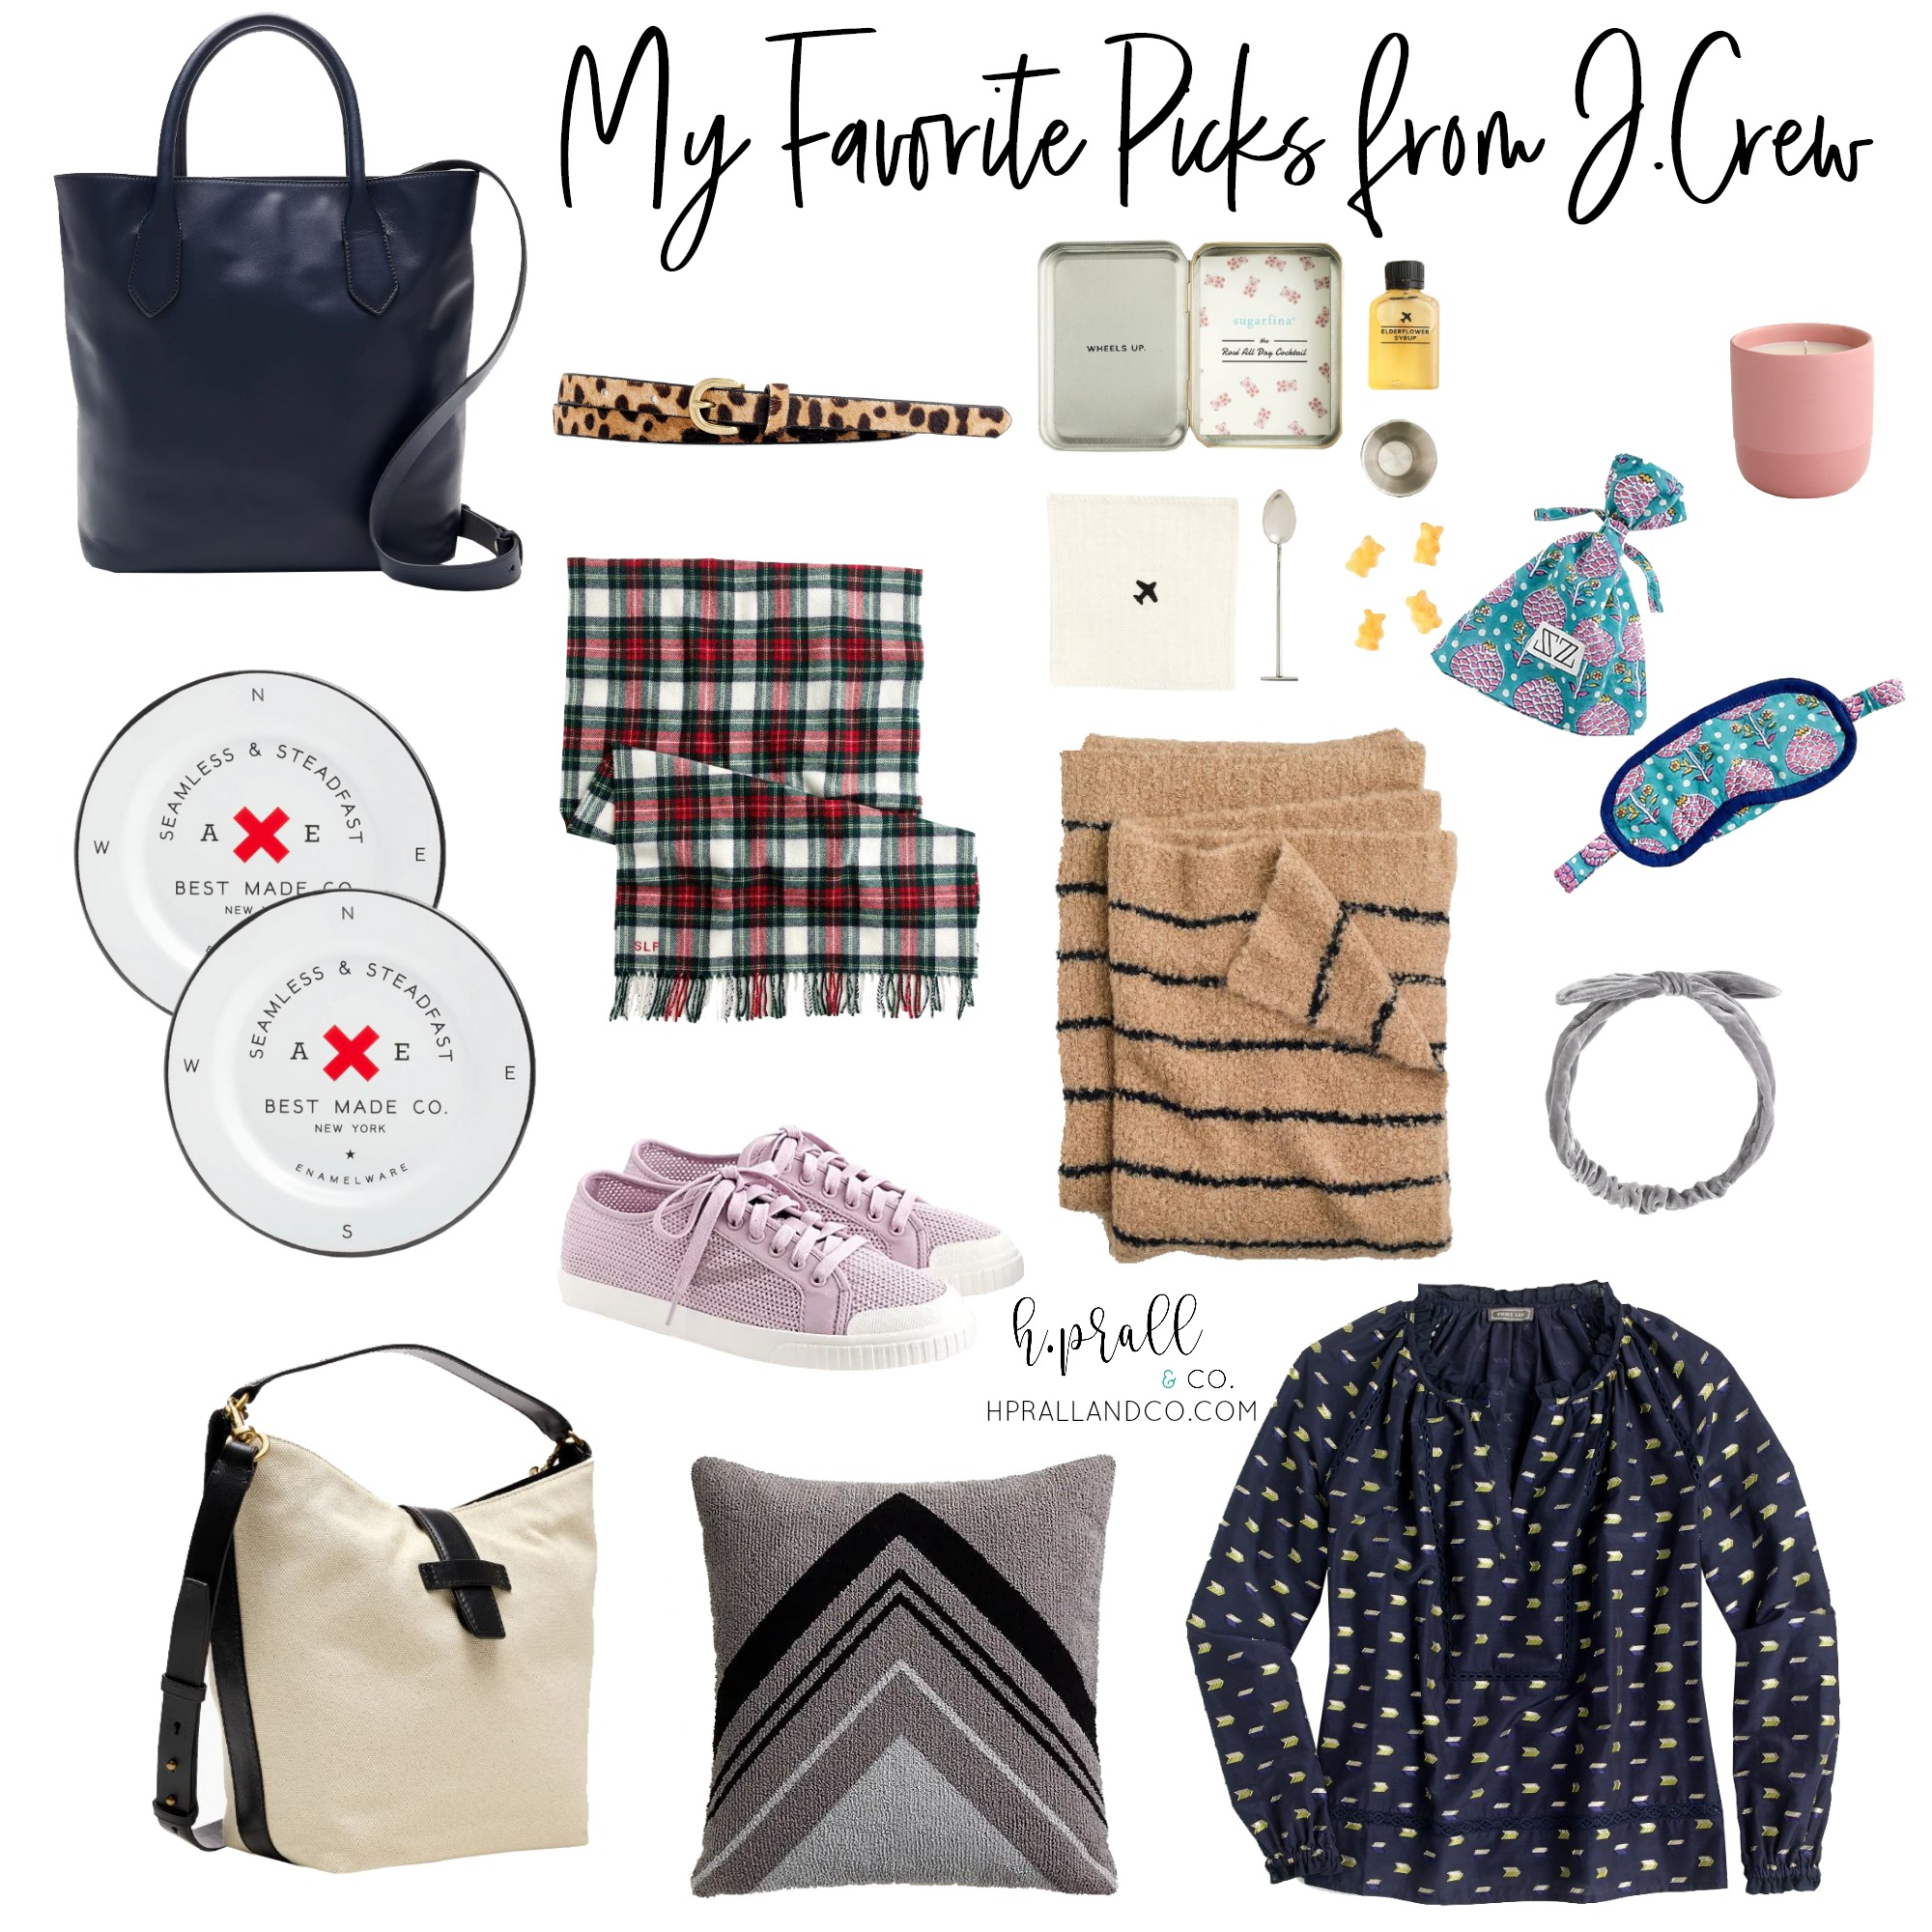 I'm sharing my favorite picks from J.Crew over at hprallandco.com!